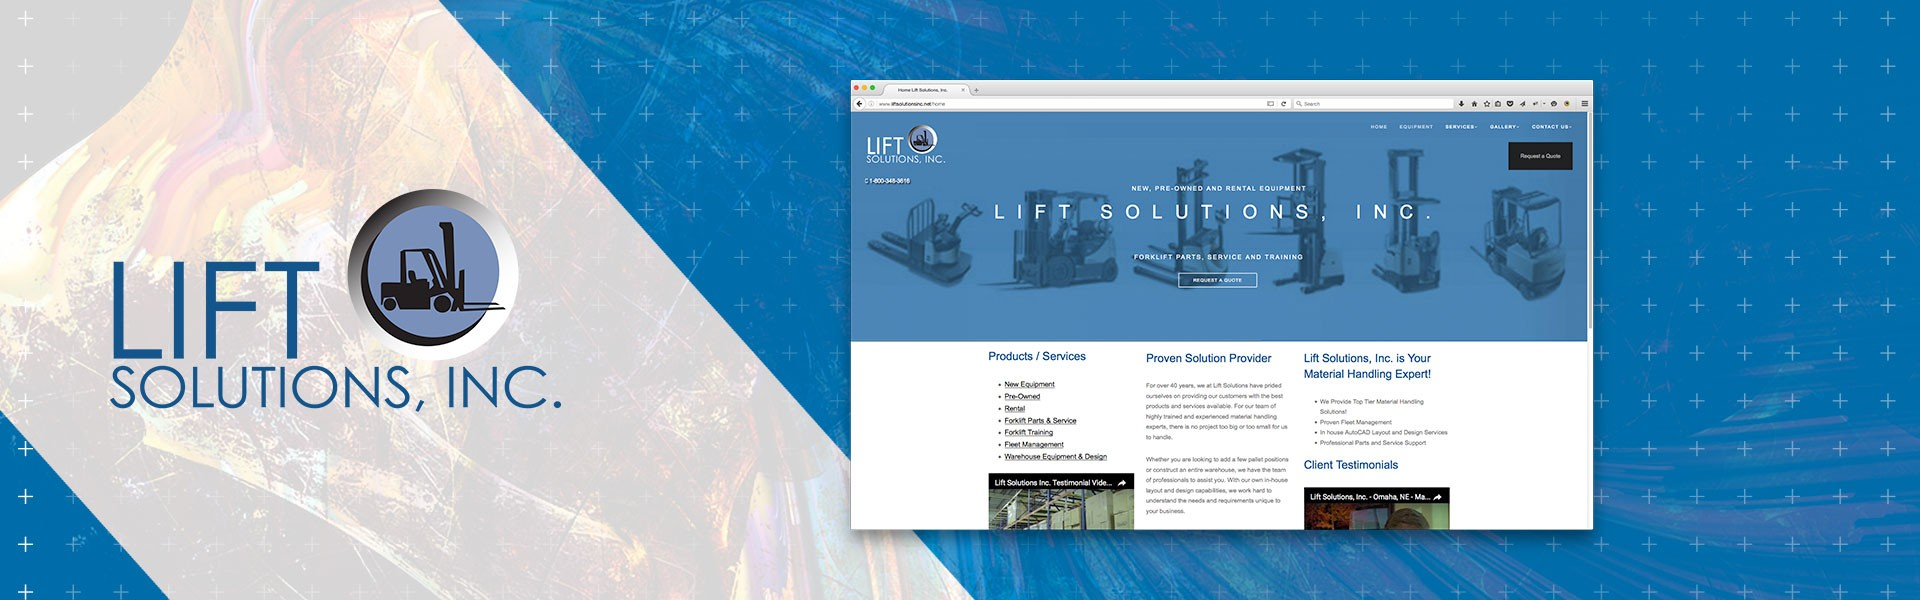 Lift Solutions, Inc. Website